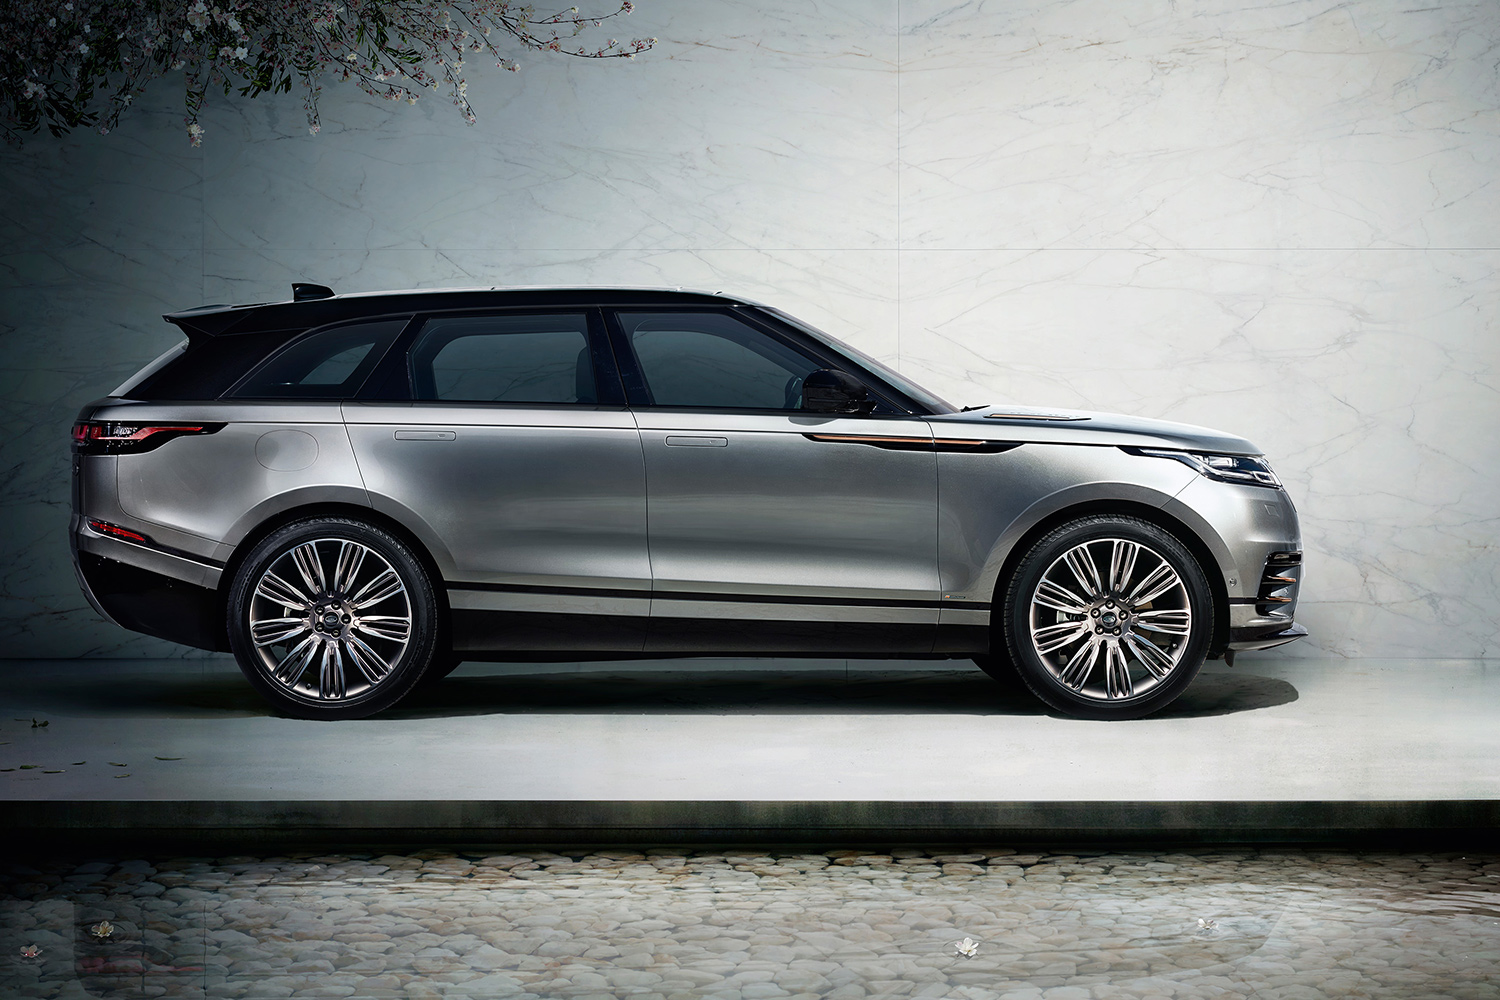 2018 Range Rover Velar Officially Revealed Ahead Of Geneva